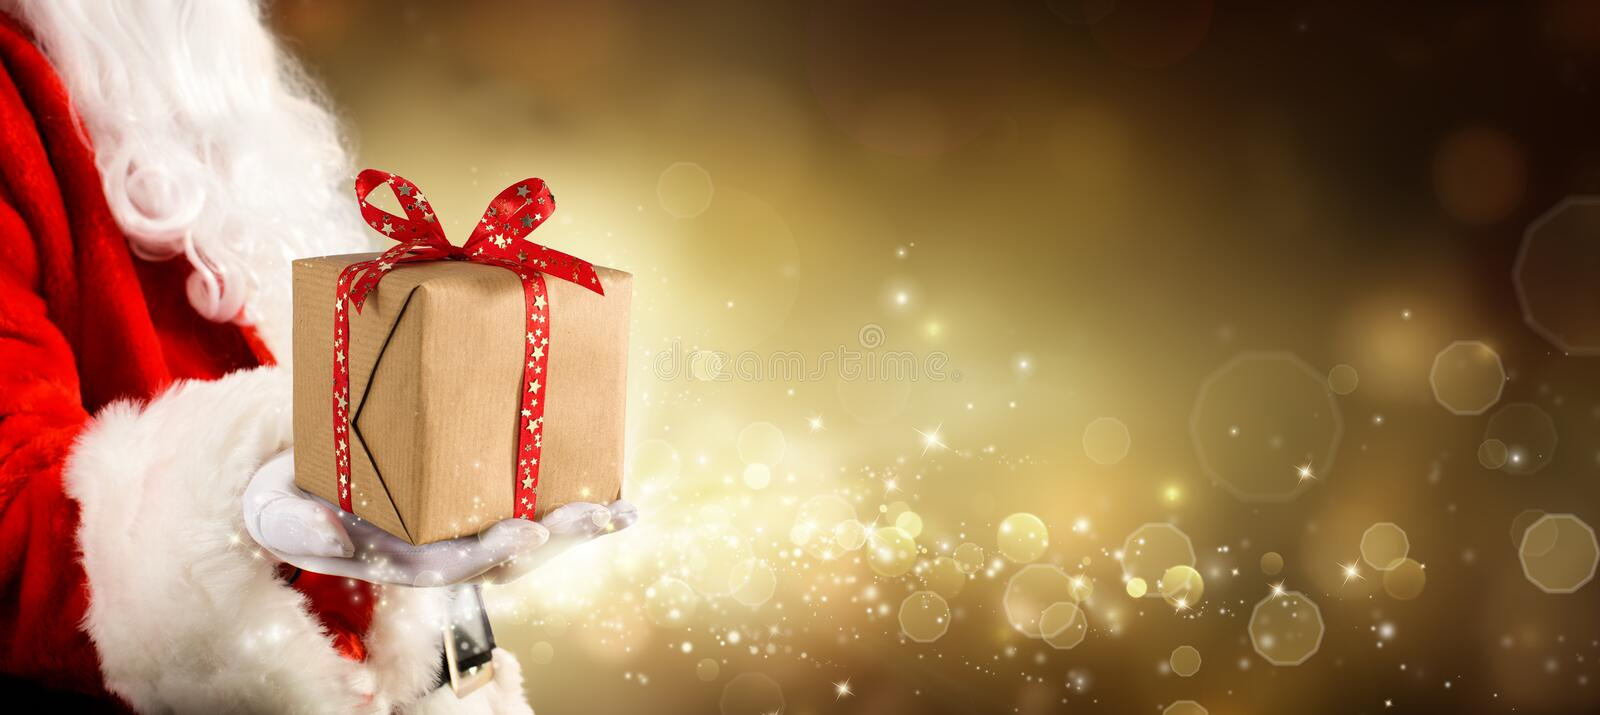 A Present For Christmas - Vintage Golden Background With Santa Claus stock image